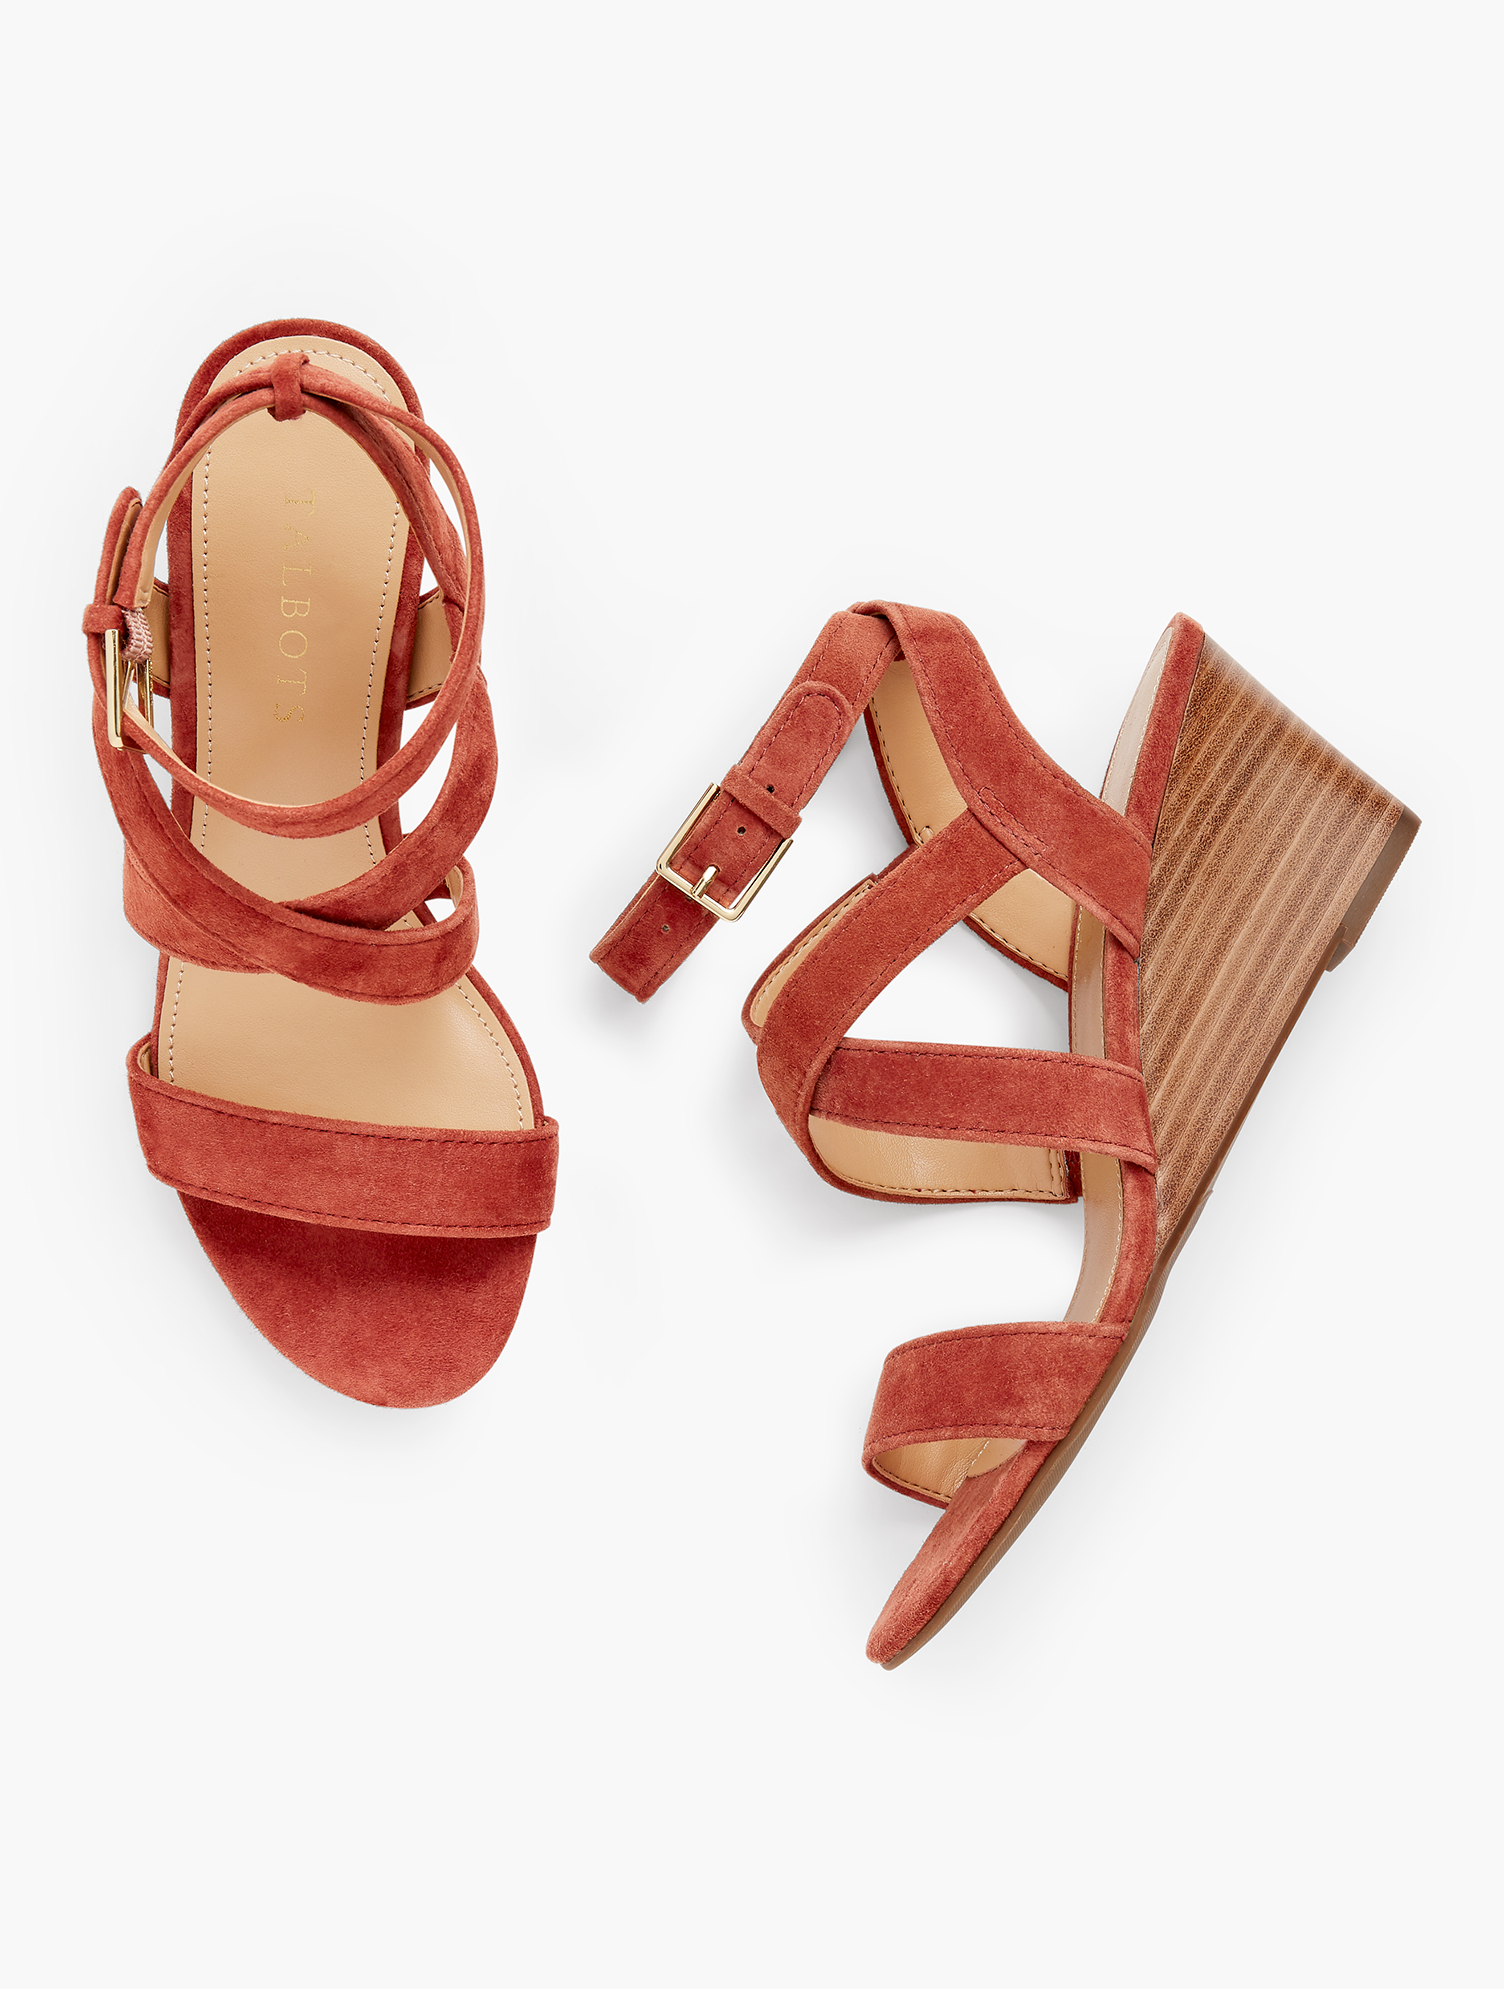 Easy-to-wear wedges that can be dressed up or down. These strappy sandals will become a warm weather staple in your wardrobe. Features 2 1/2 inches heel Almond toe 3MM Memory Foam Imported Fit: 100% Leather Royce Strappy Wedges - Suede - Amber Rust - 11M Talbots